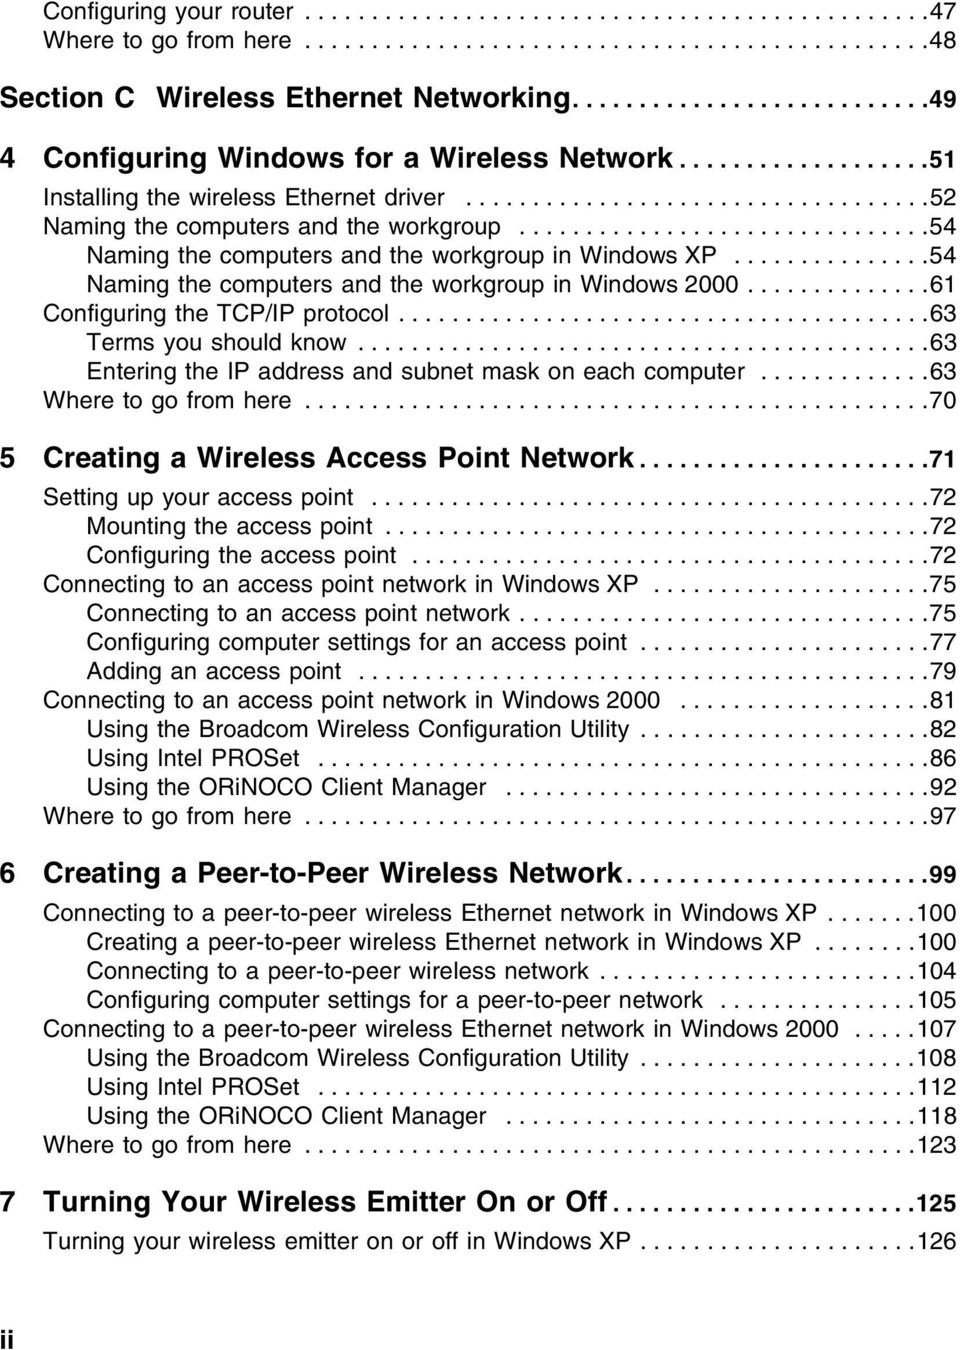 ..............................54 Naming the computers and the workgroup in Windows XP...............54 Naming the computers and the workgroup in Windows 2000..............61 Configuring the TCP/IP protocol.